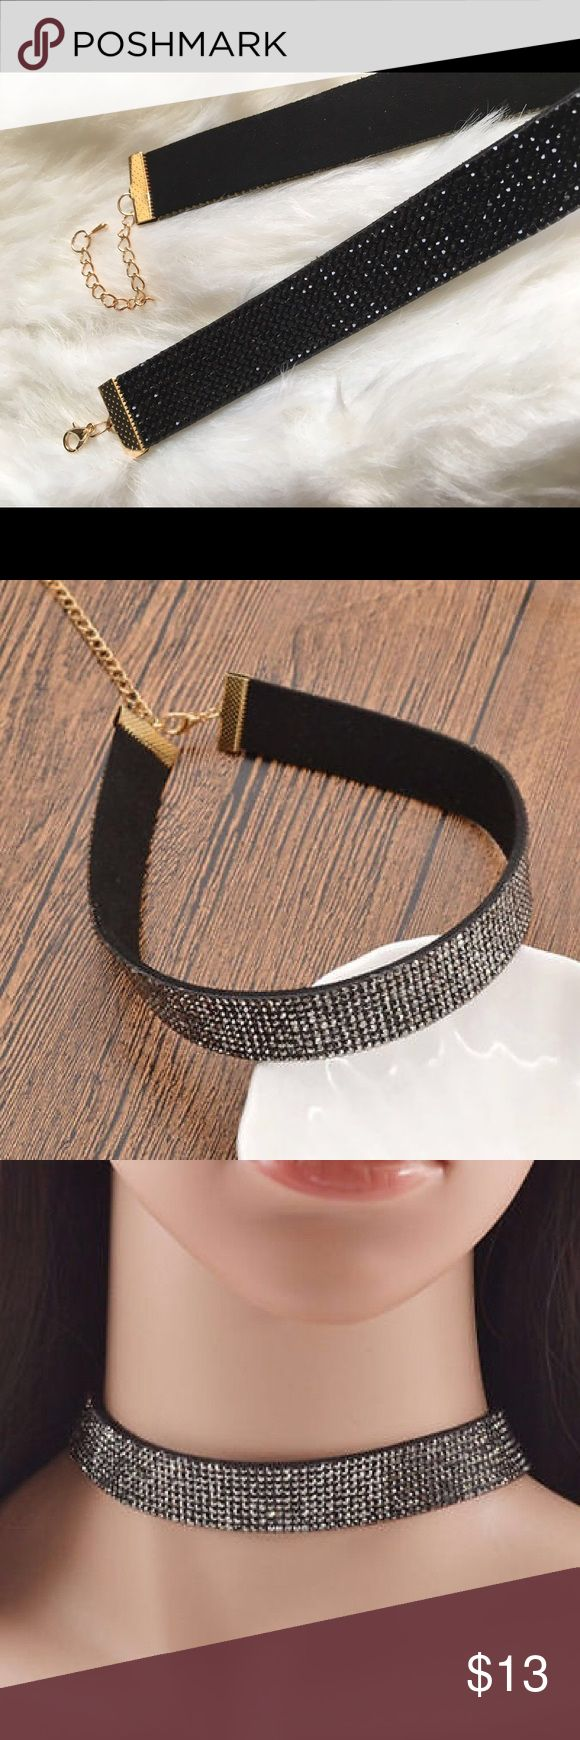 Black rhinestone choker New in package black rhinestone choker! Approximately 33 cm in length. Features gold clasp closure and black rhinestones all through out. First picture is mine and of the exact item you will receive! **NOT from listed brand** Nasty Gal Jewelry Necklaces